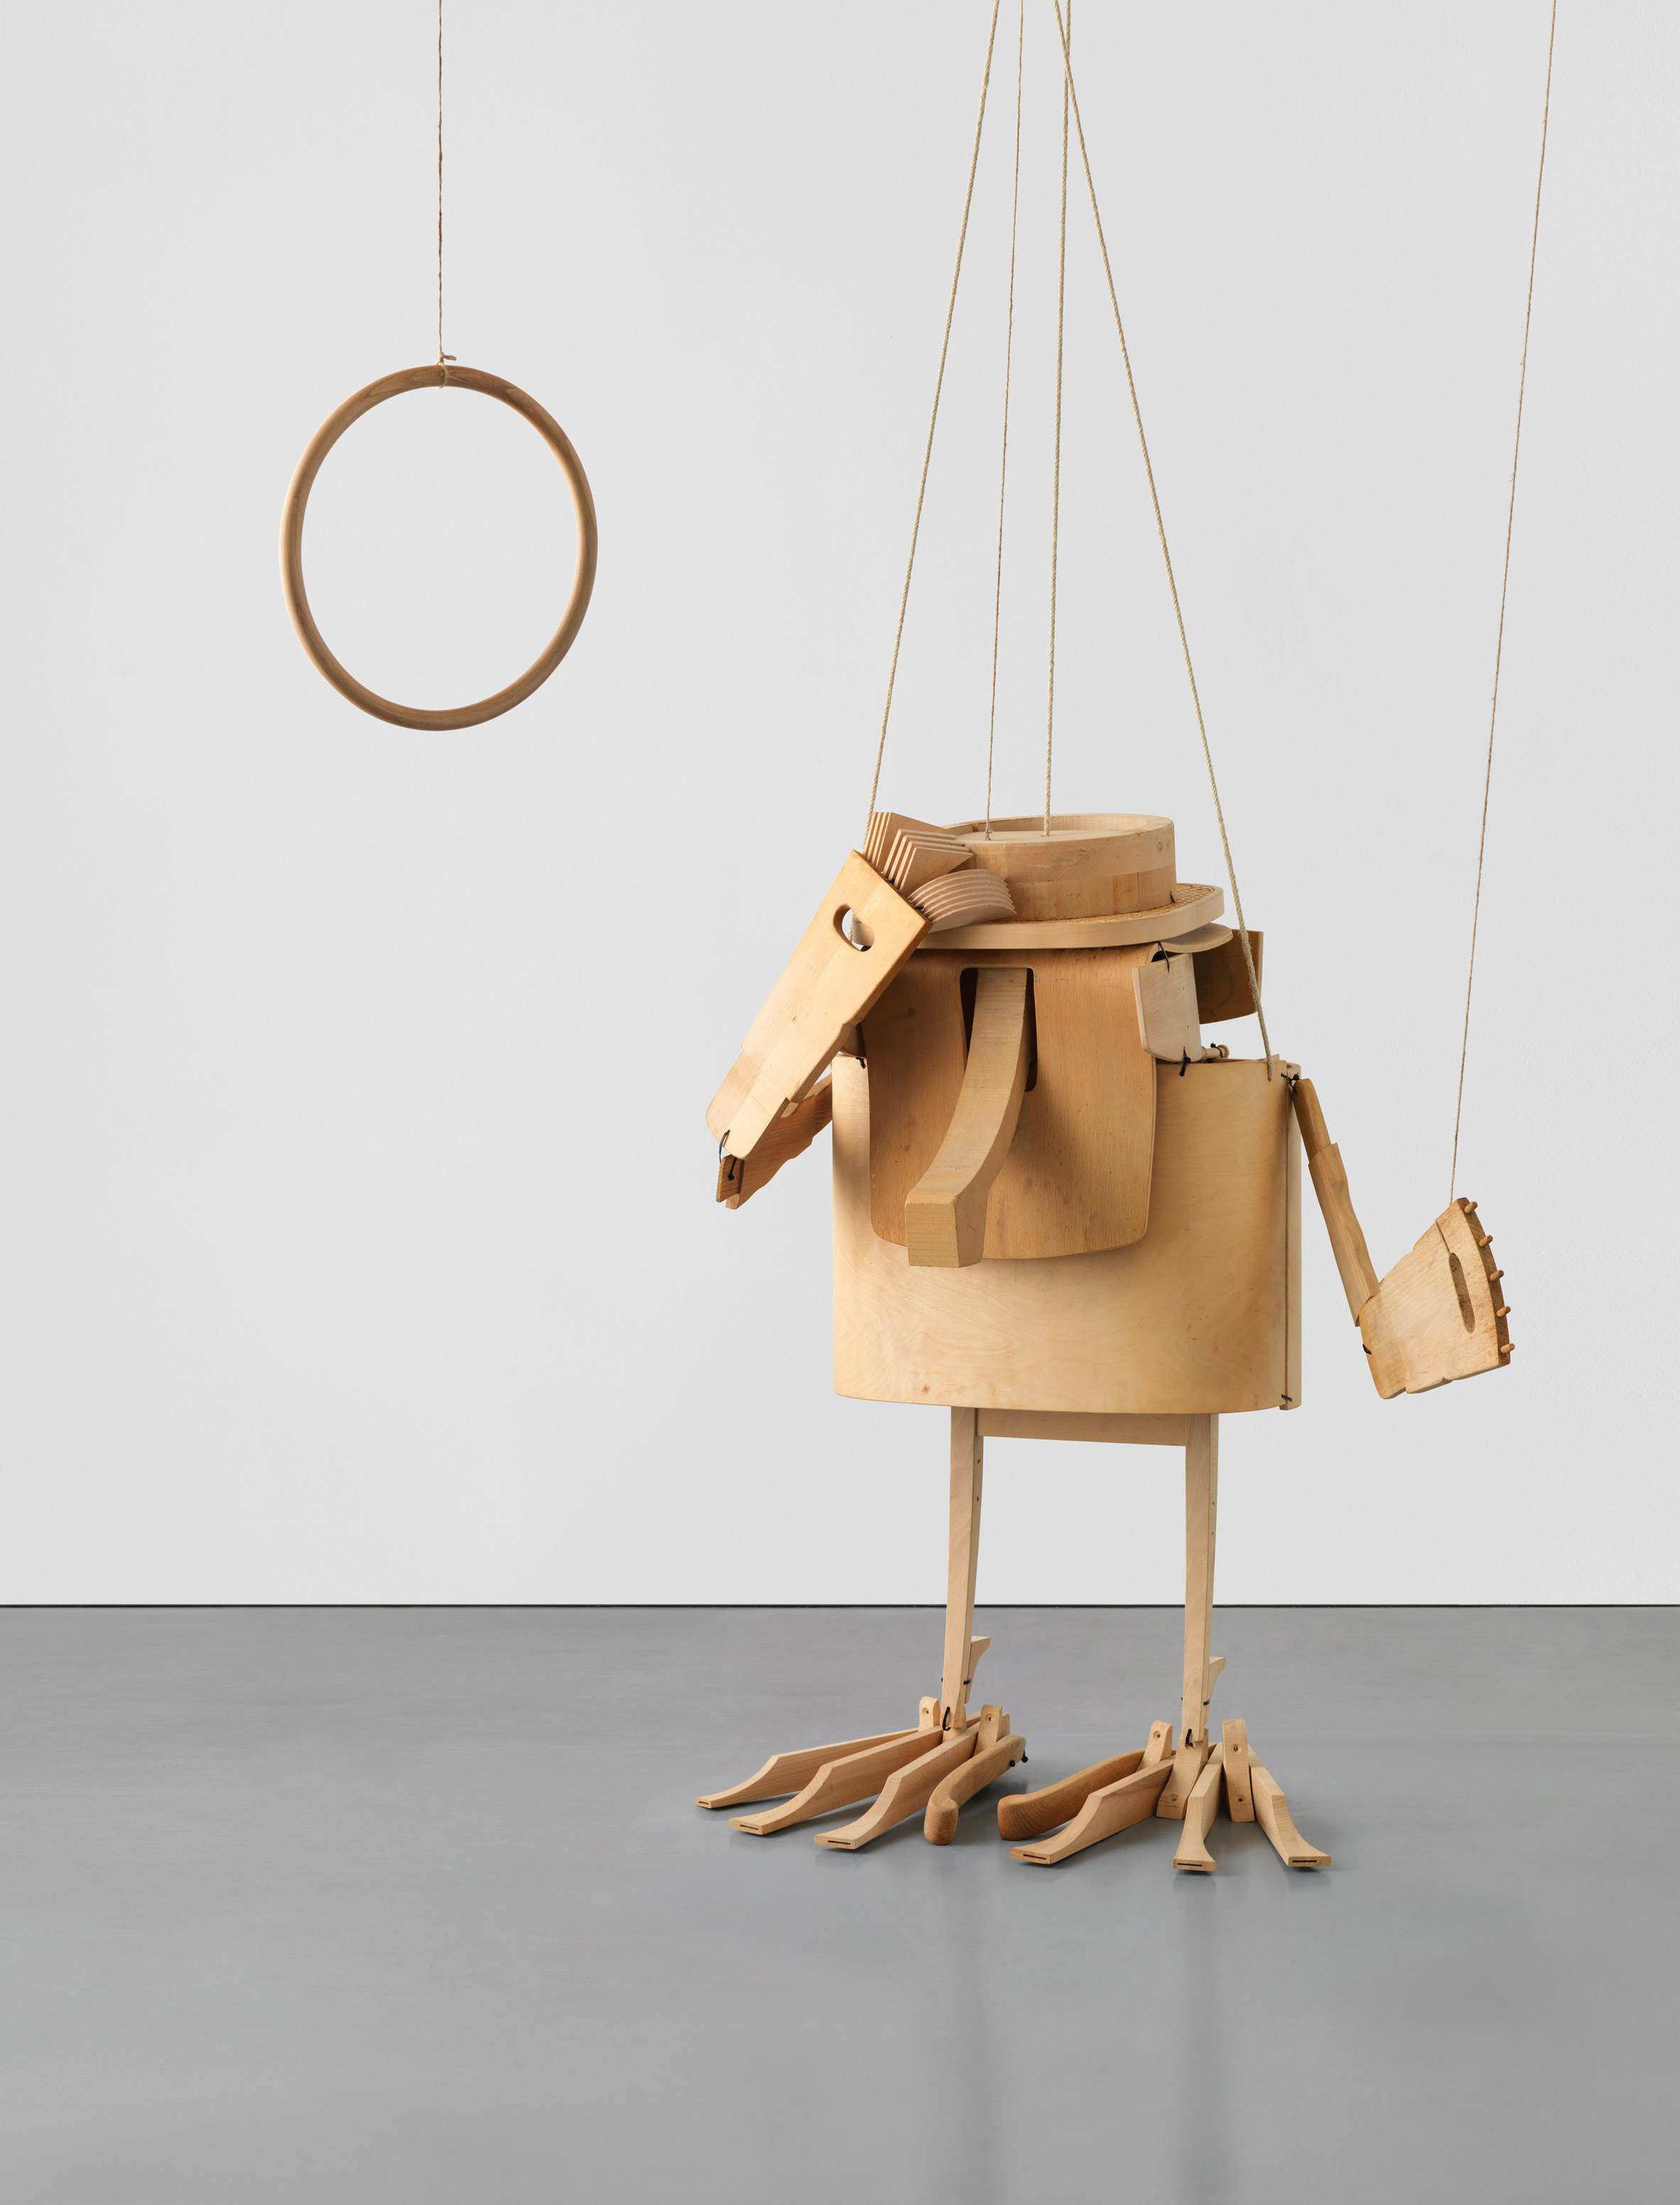 Ventura Centrale to host giant puppets and a pop-up diner at Milan design week